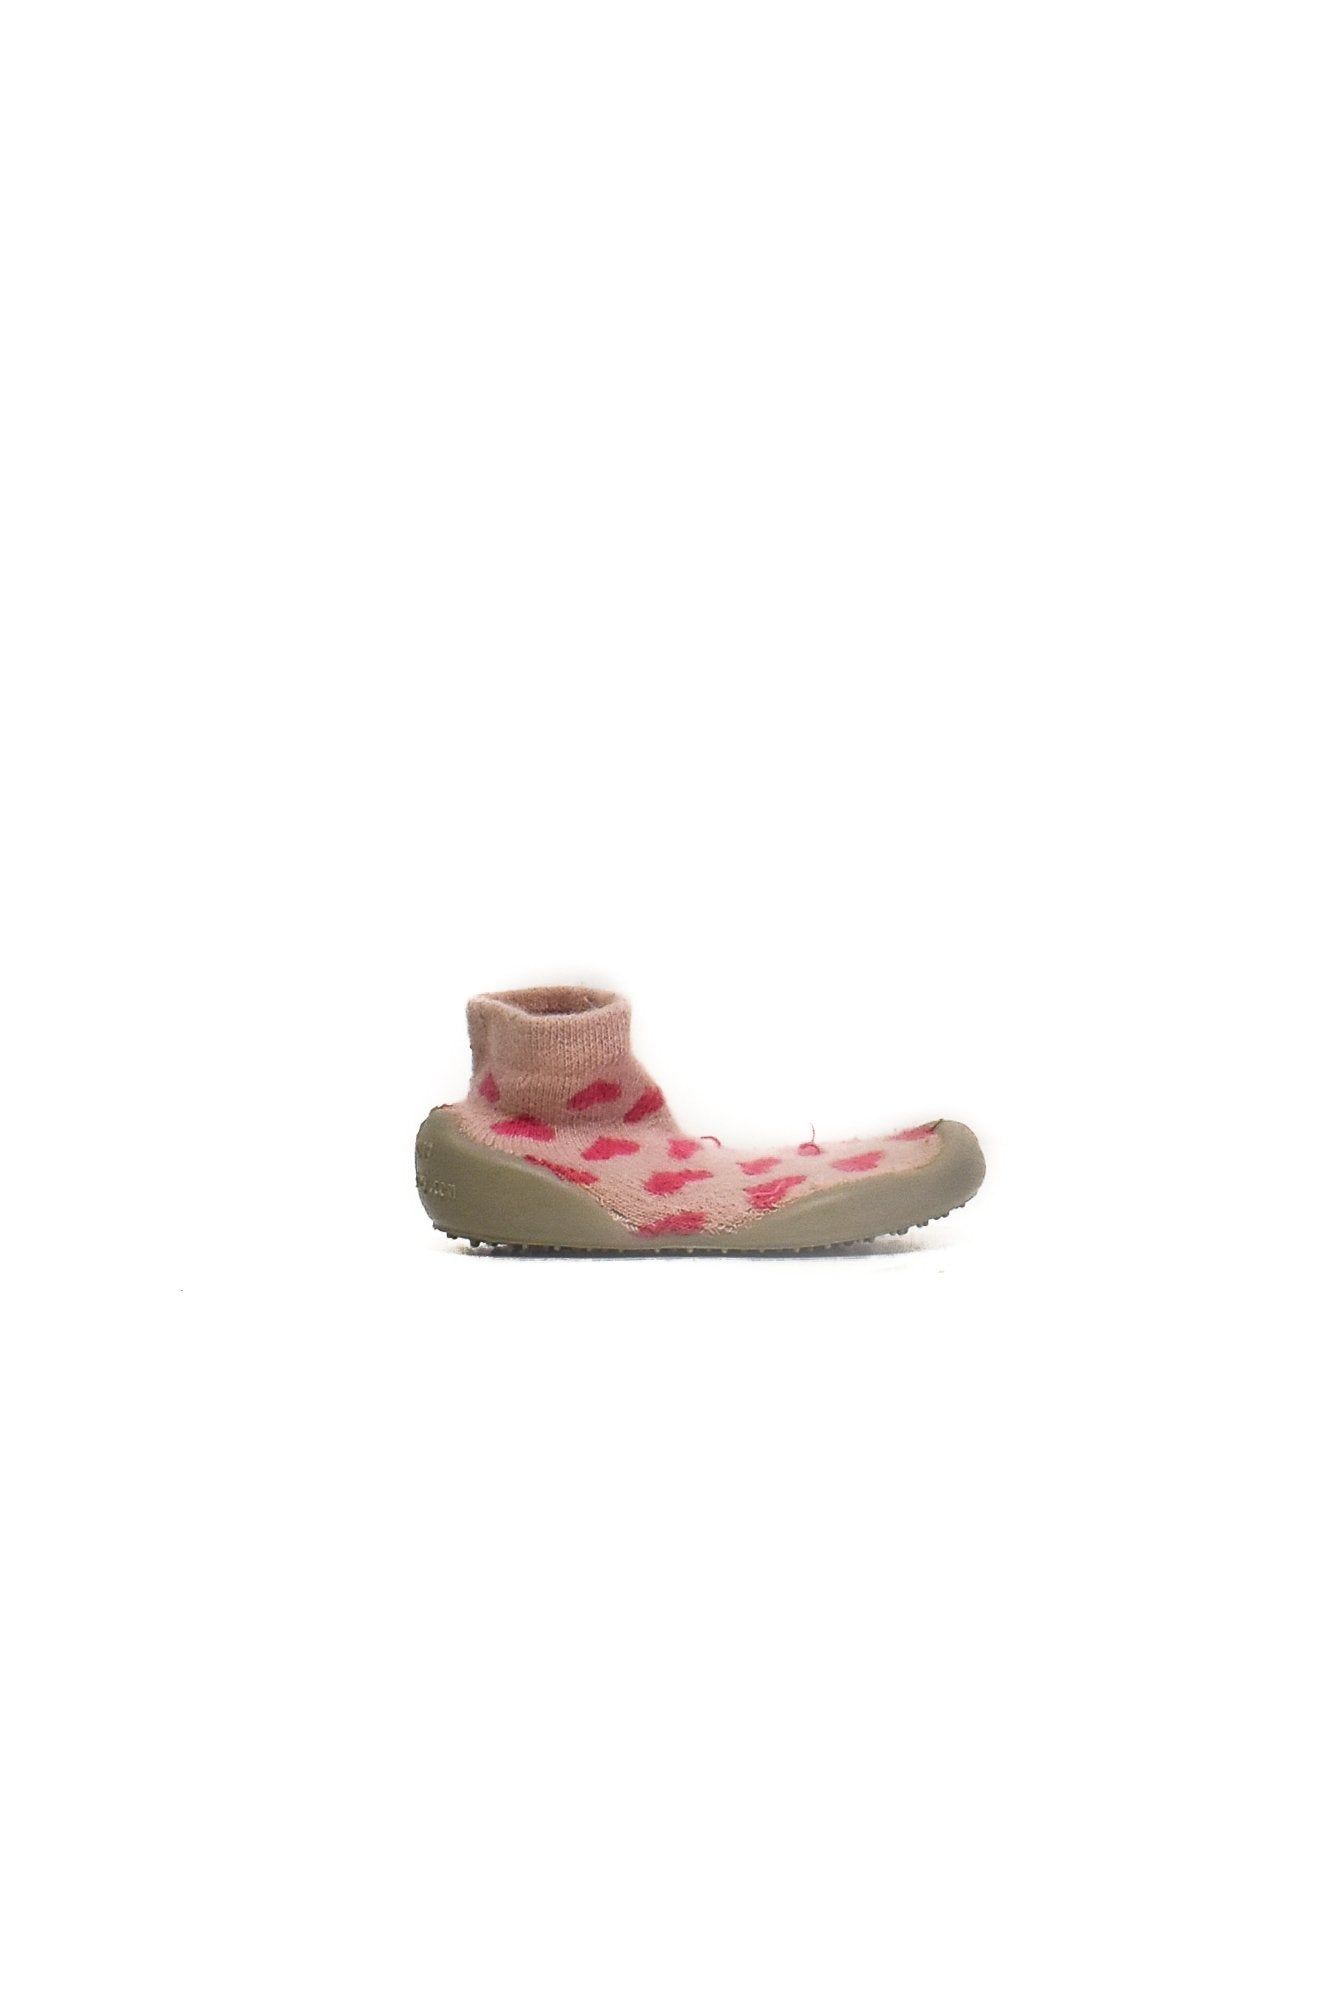 10006715 Collegien Kids~ Shoes 6-12M (EU 18-19) at Retykle